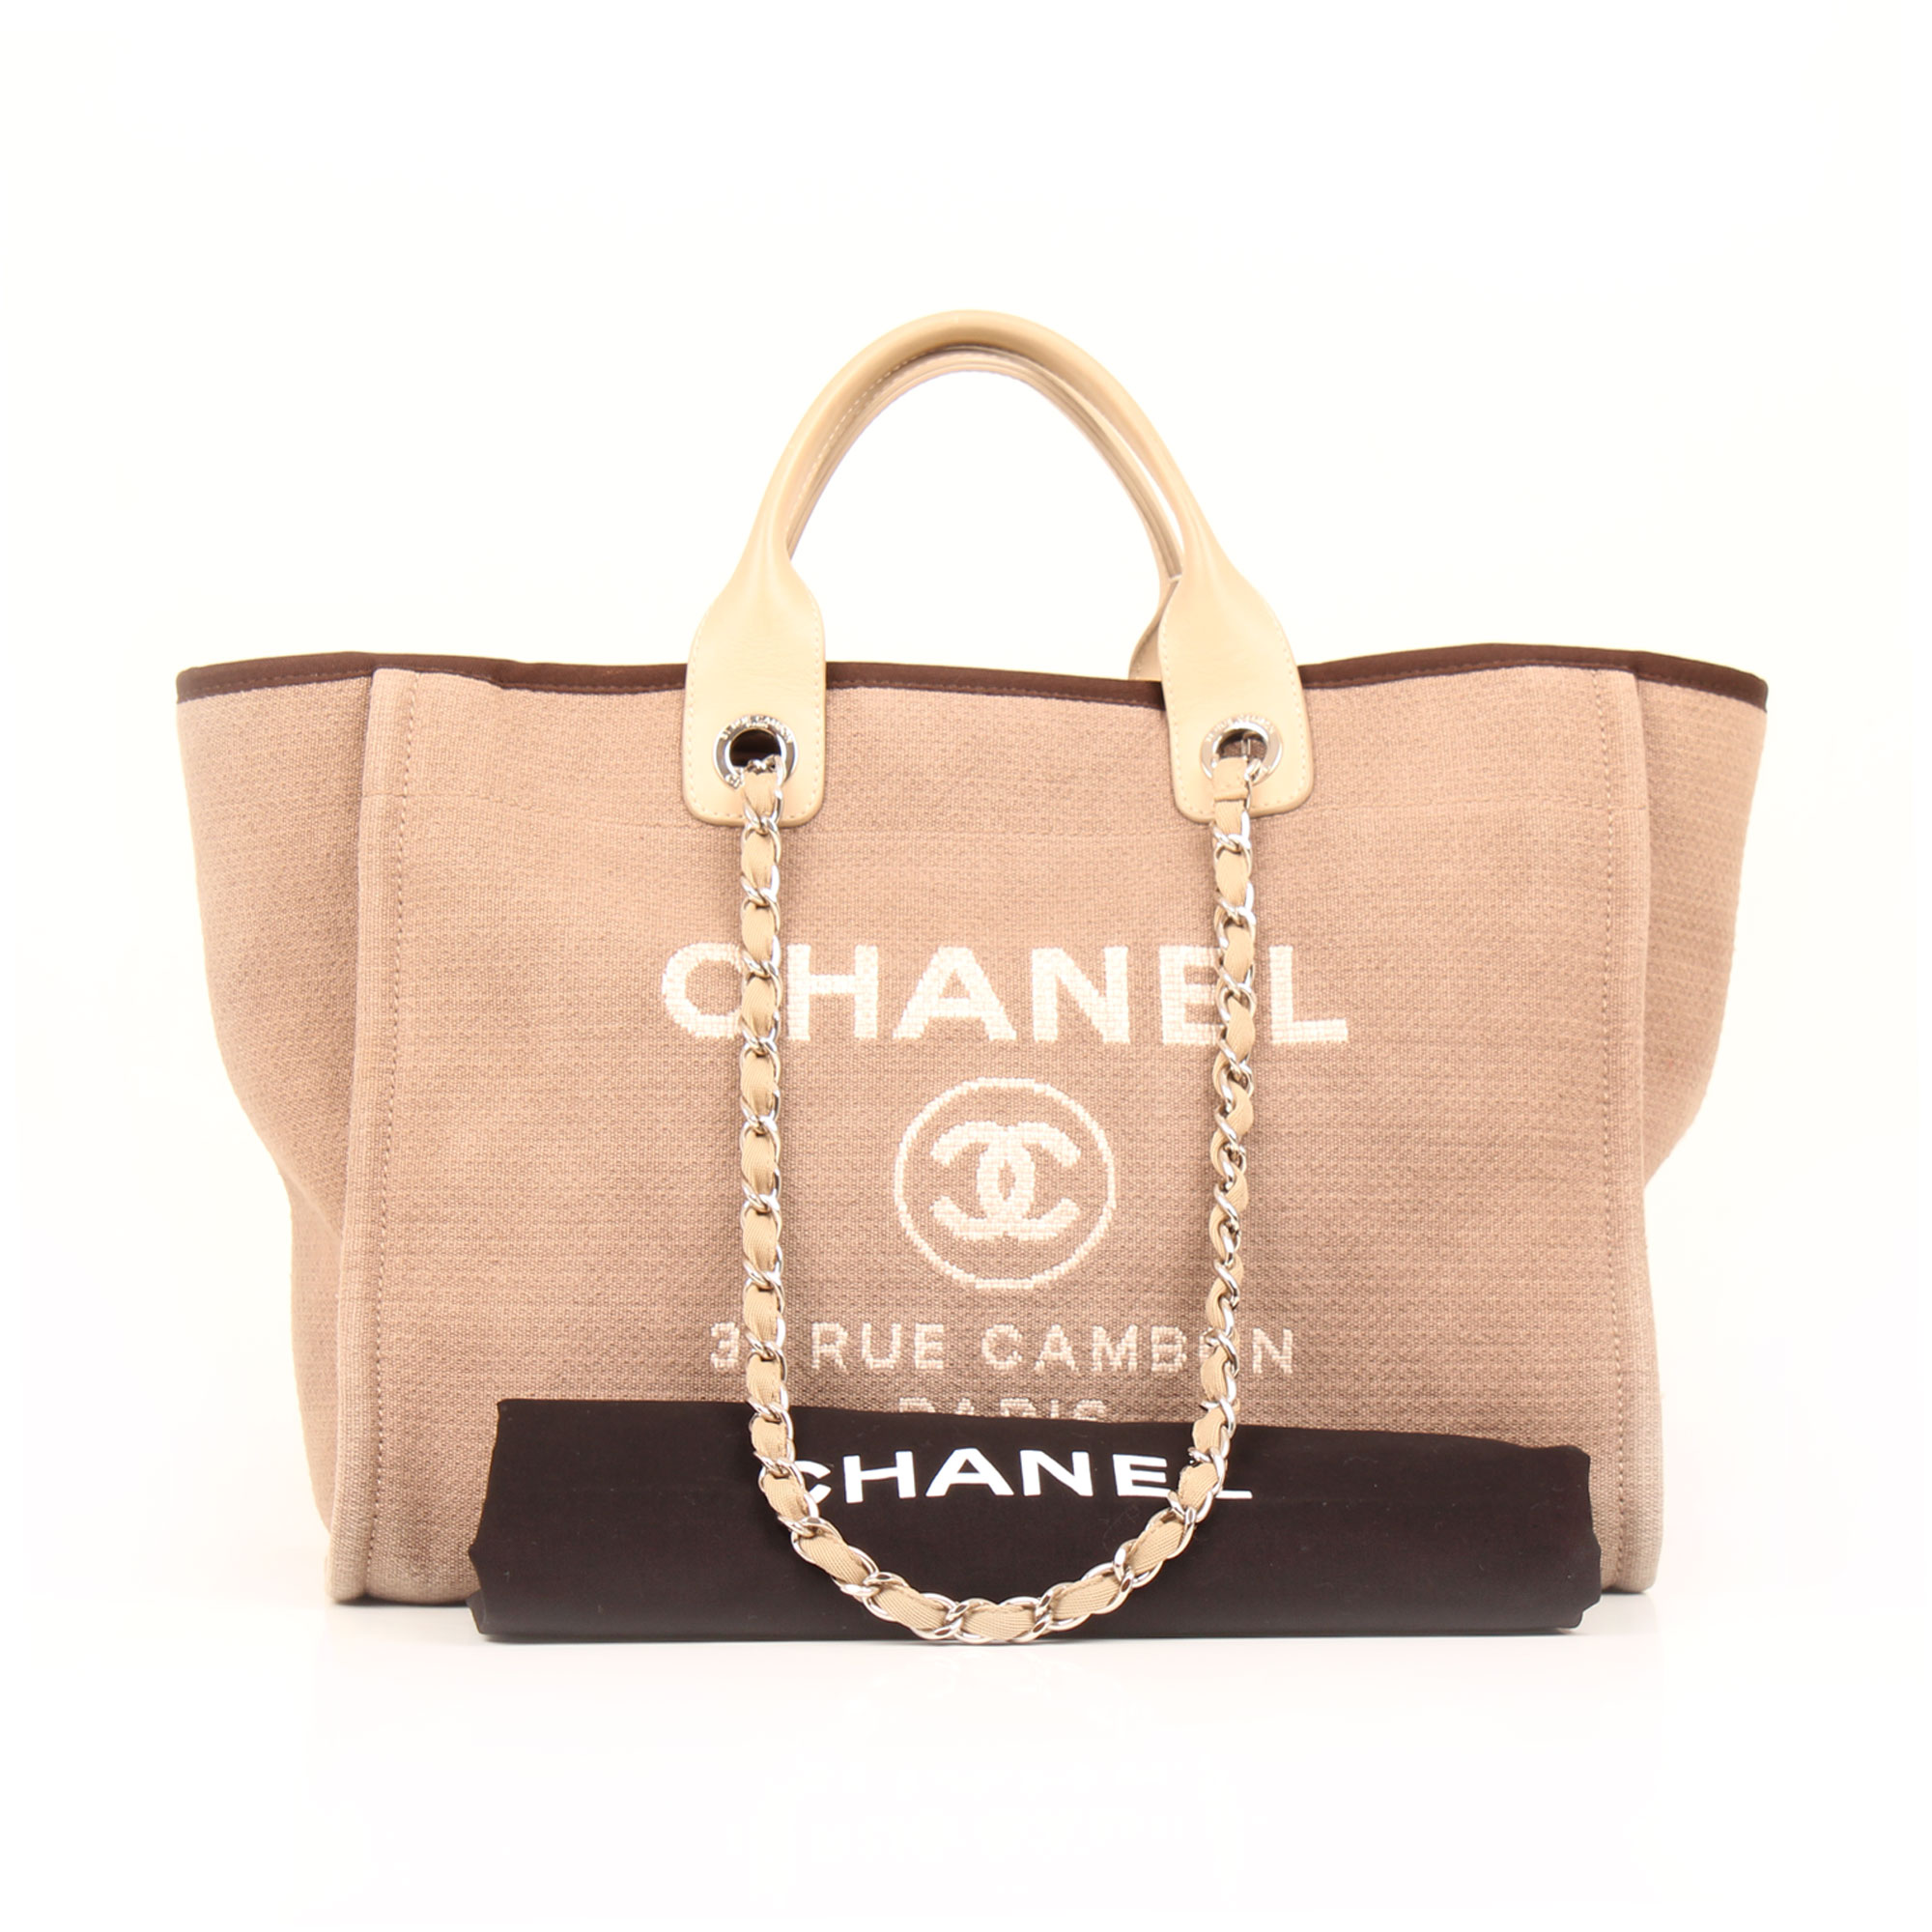 Dustbag image of chanel ecru deauville tote bag